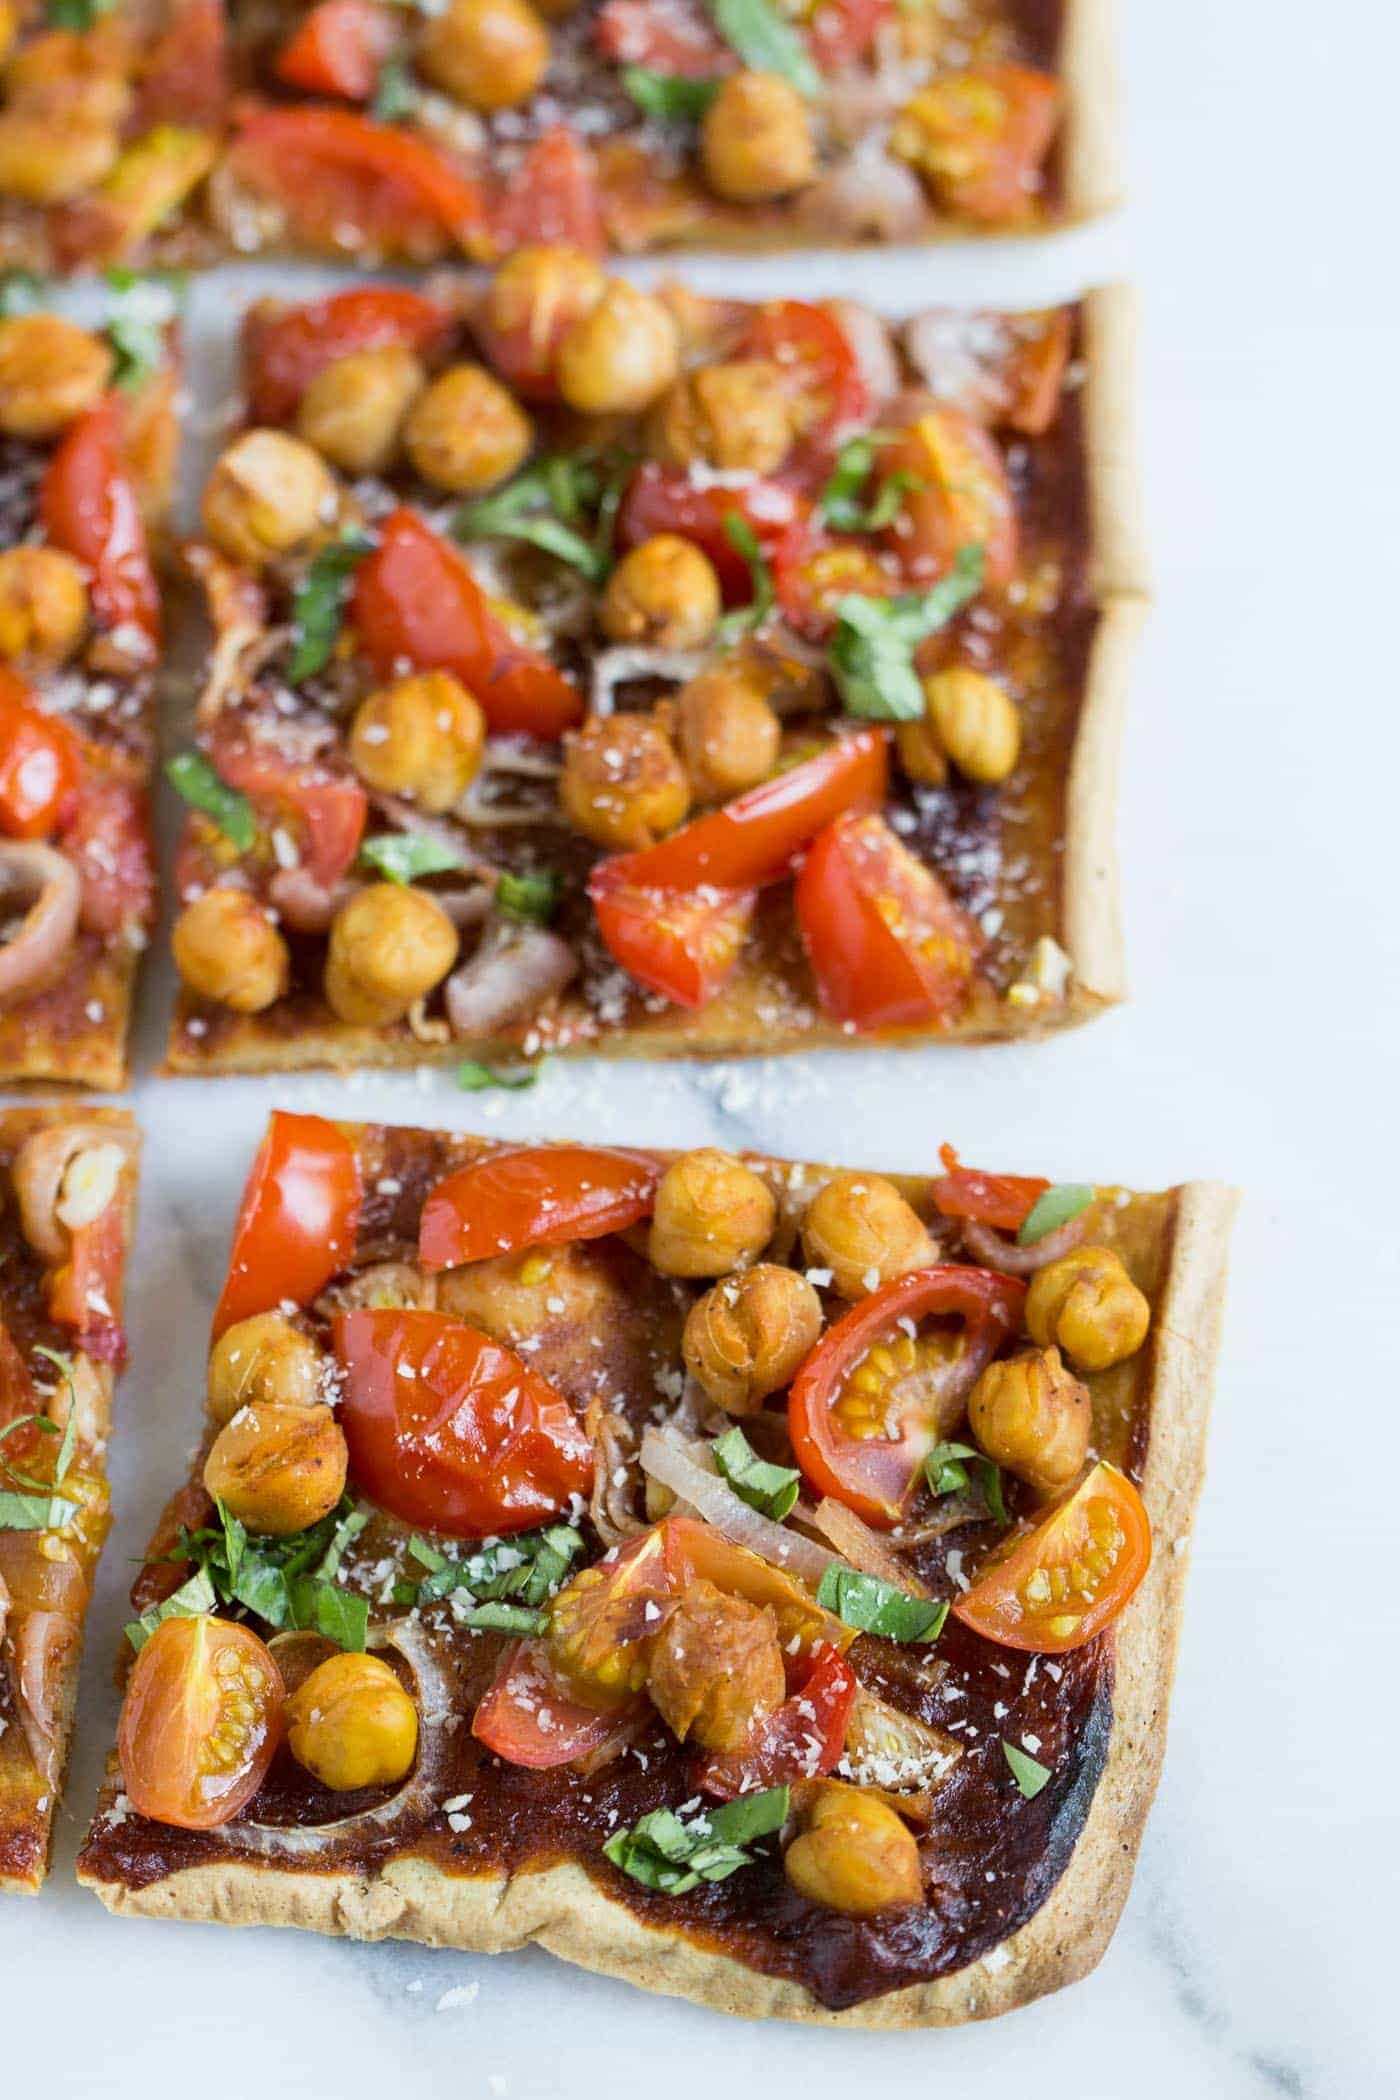 BBQ QUINOA PIZZA topped with shallots, cherry tomatoes and chickpeas! [vegetarian + gluten-free]